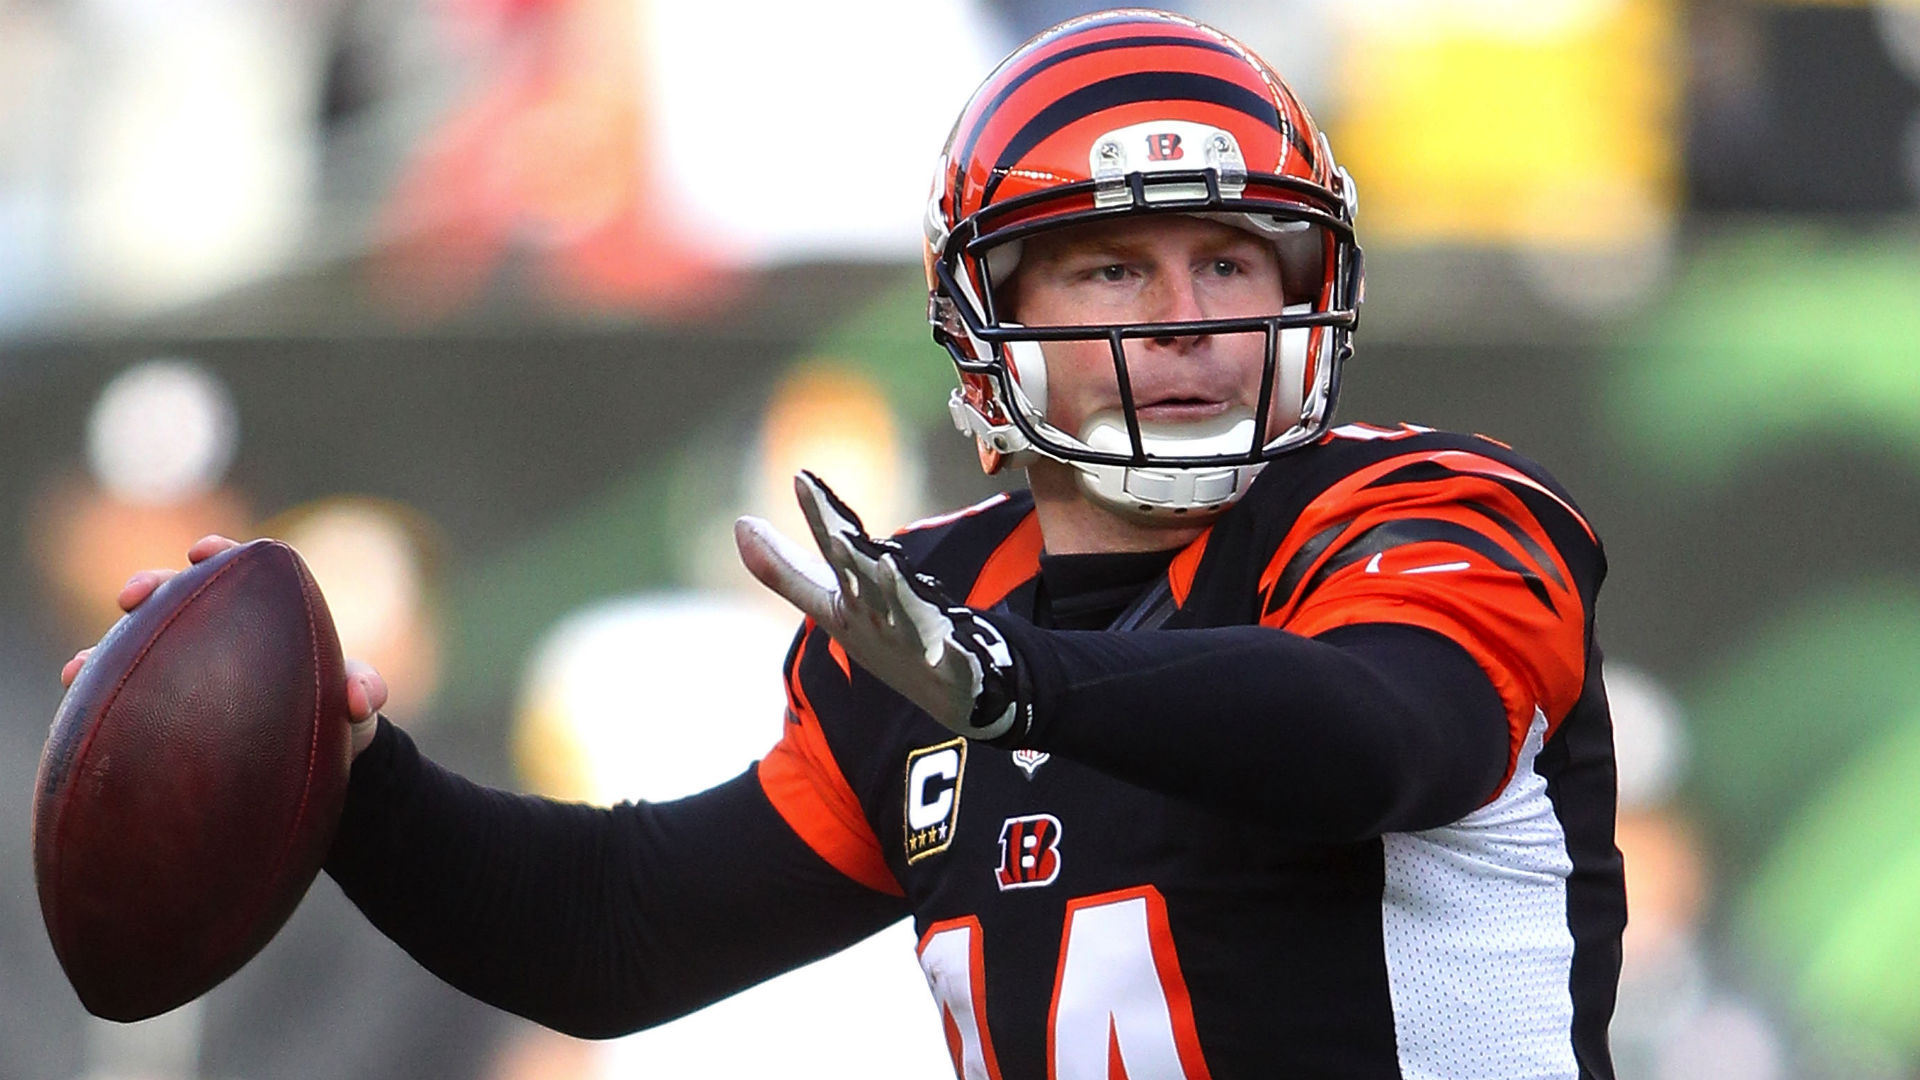 Broncos vs. Bengals betting preview and pick — Manning has had magic touch vs. Cincinnati